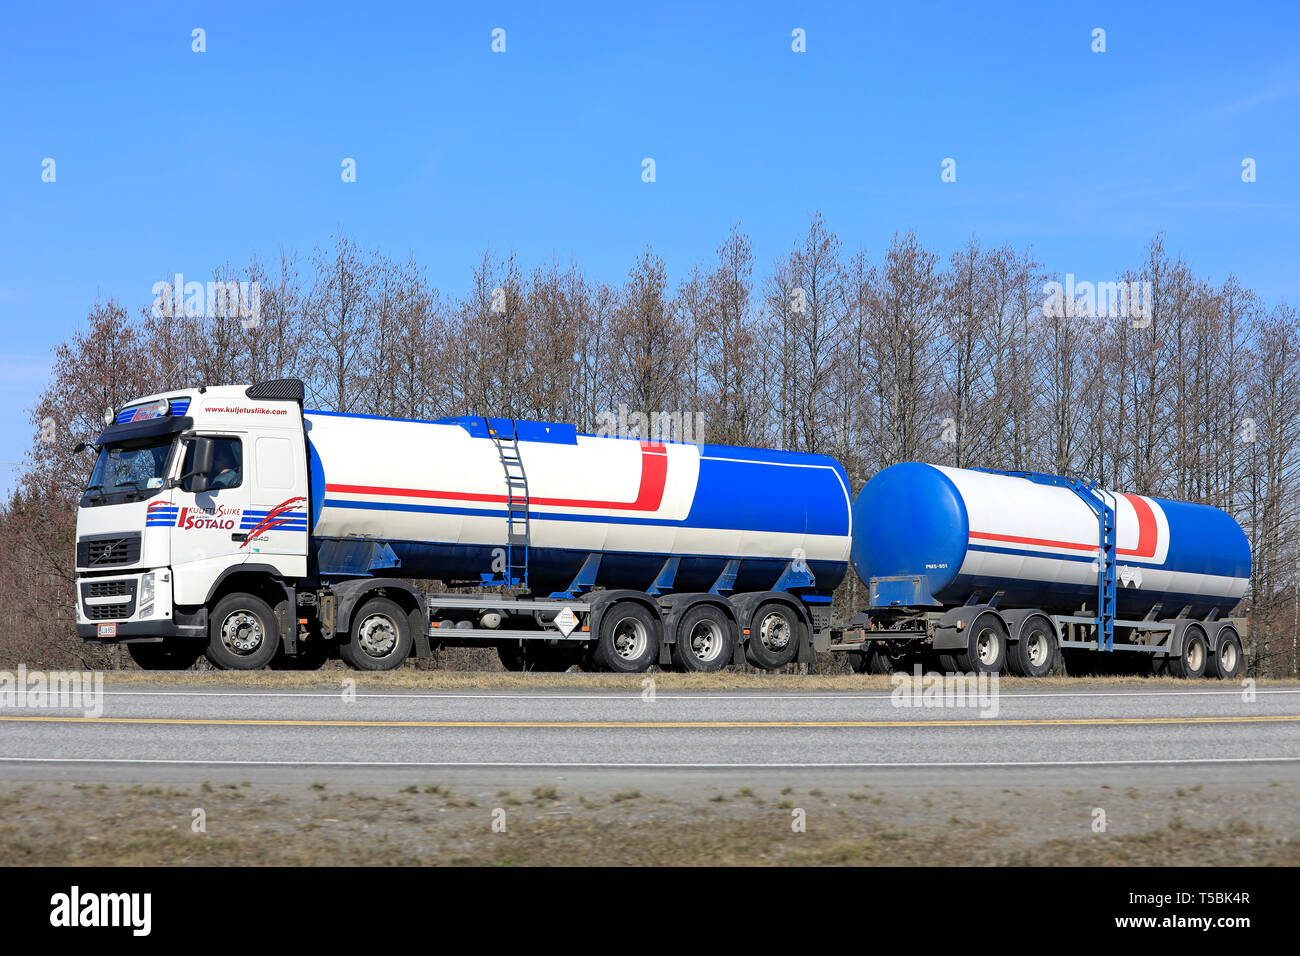 Forssa, Finland - April 6, 2019: Colorful Volvo FH 540 tank truck of Kuljetusliike Aarni Isotalo Oy at speed on highway ramp on a day of spring. - Stock Image